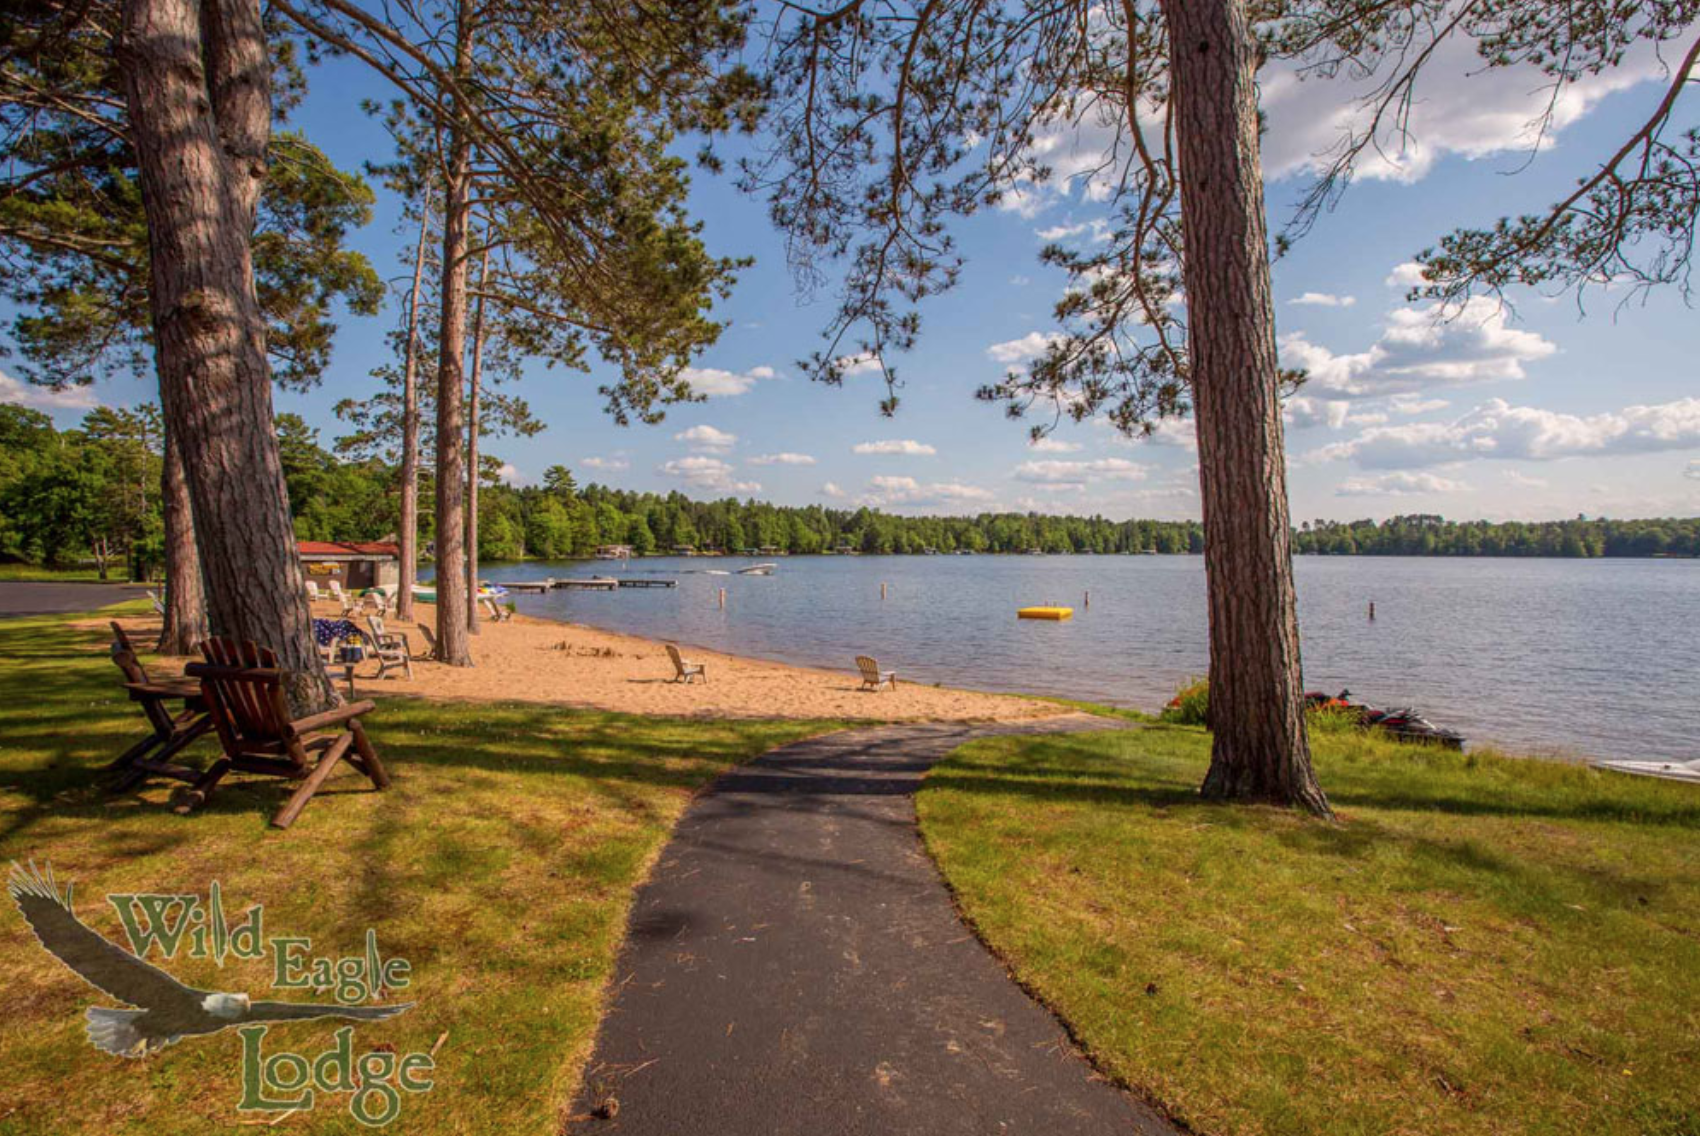 Enjoy the Serenity of the Northwoods at Wild Eagle Lodge